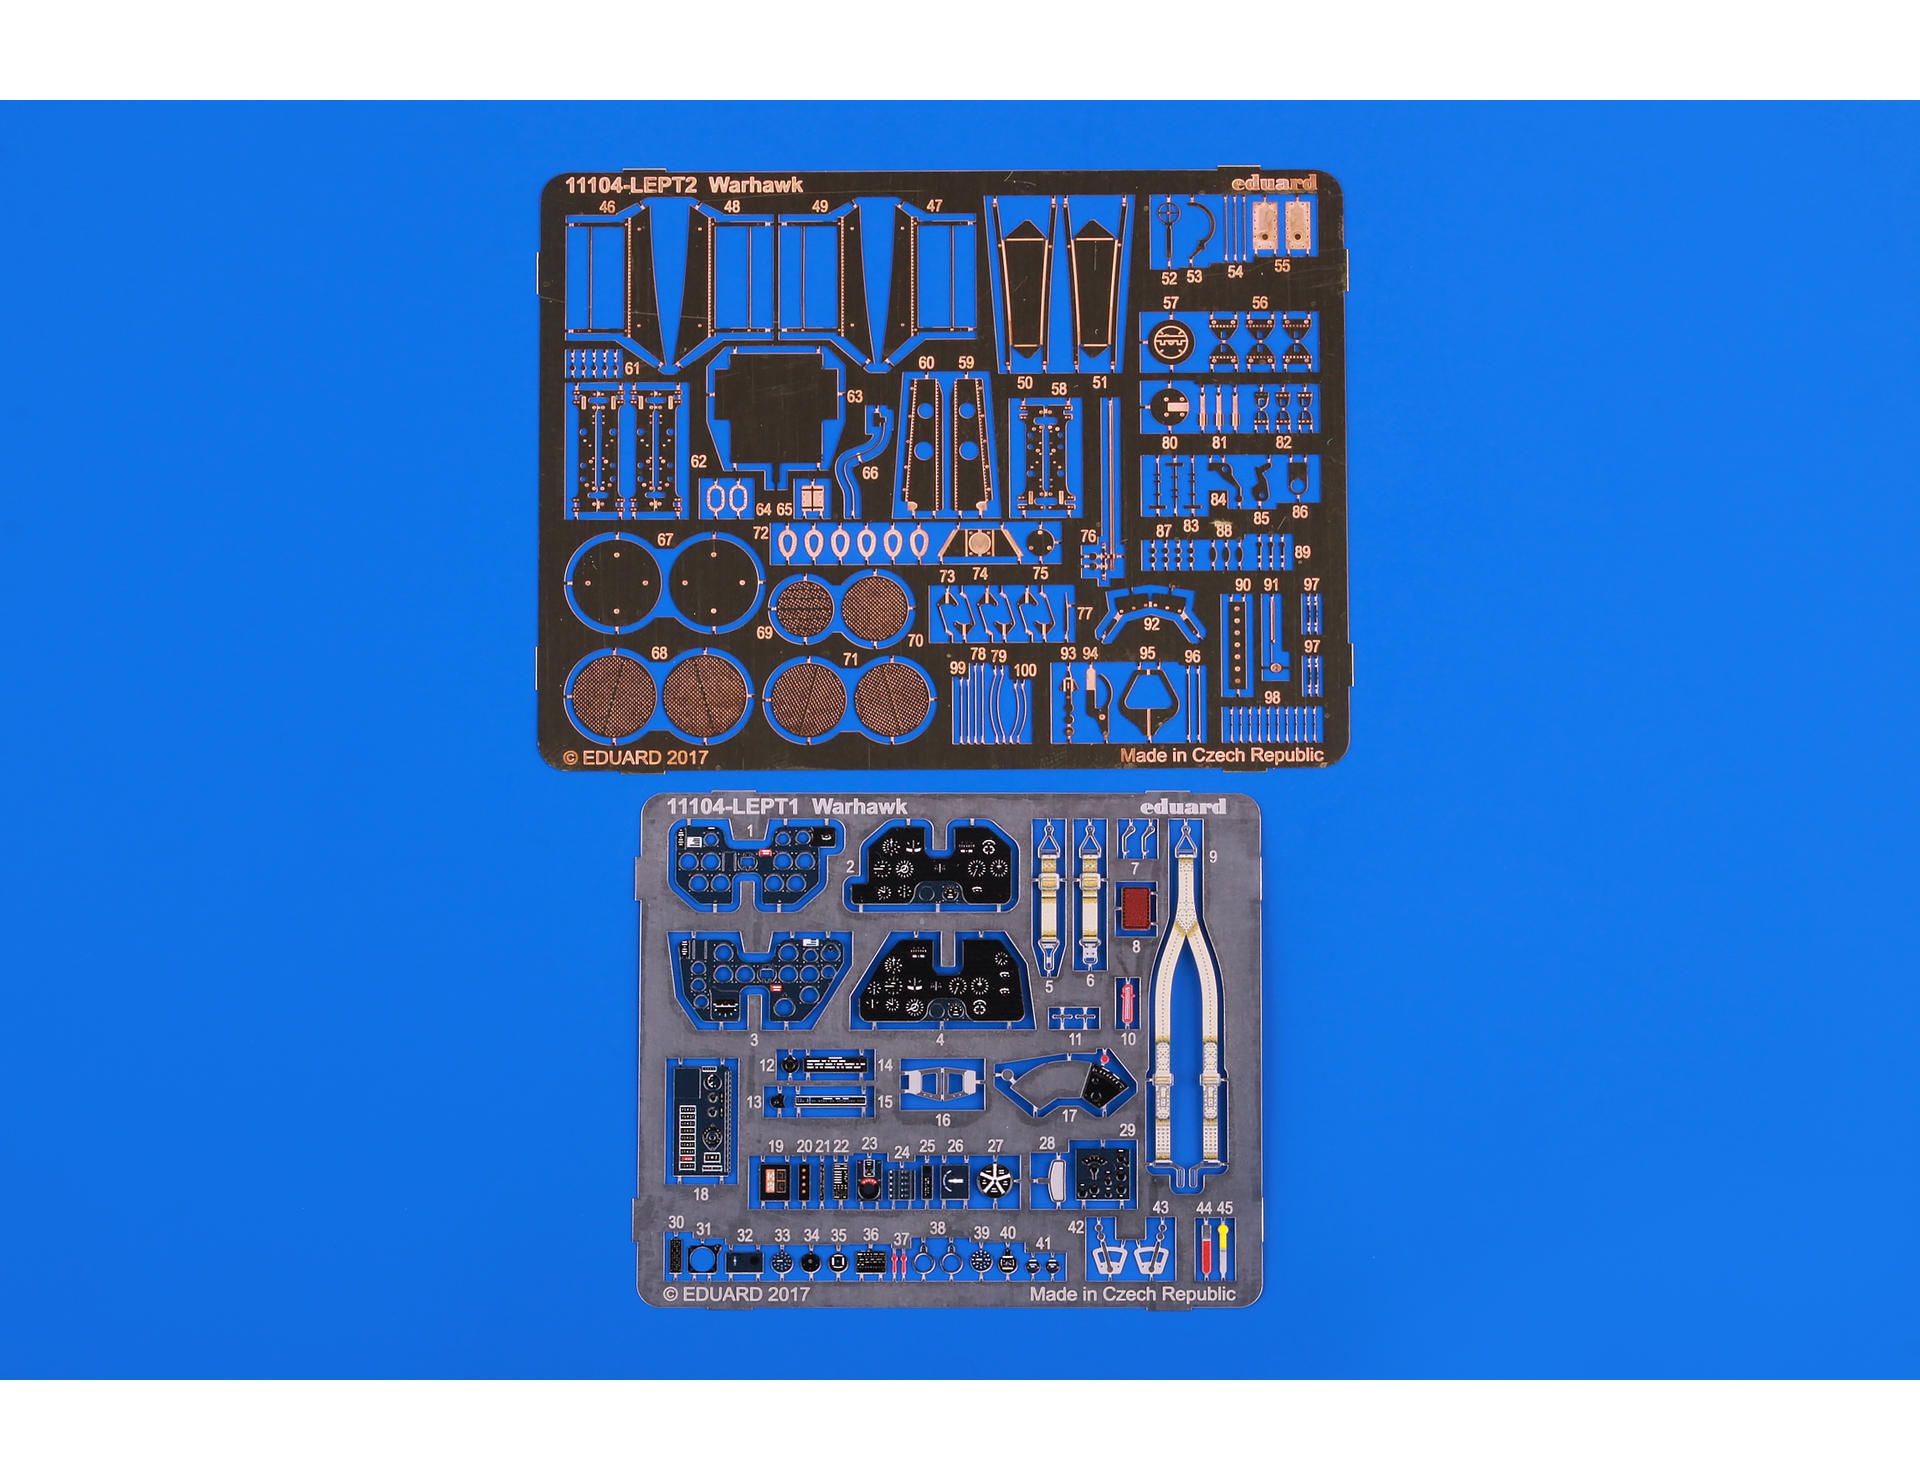 Hasegawa 18 Toyland Hobby Modeling Magazine Figure 28 12v Electric Motor Tester Circuit Wiring Diagram M983 Eduart Limited Edition Kit Of P 40n Warhawk Cat No 11104 In 1 32 Scale Contains Plastic Parts By 4 Camouflage Schemes